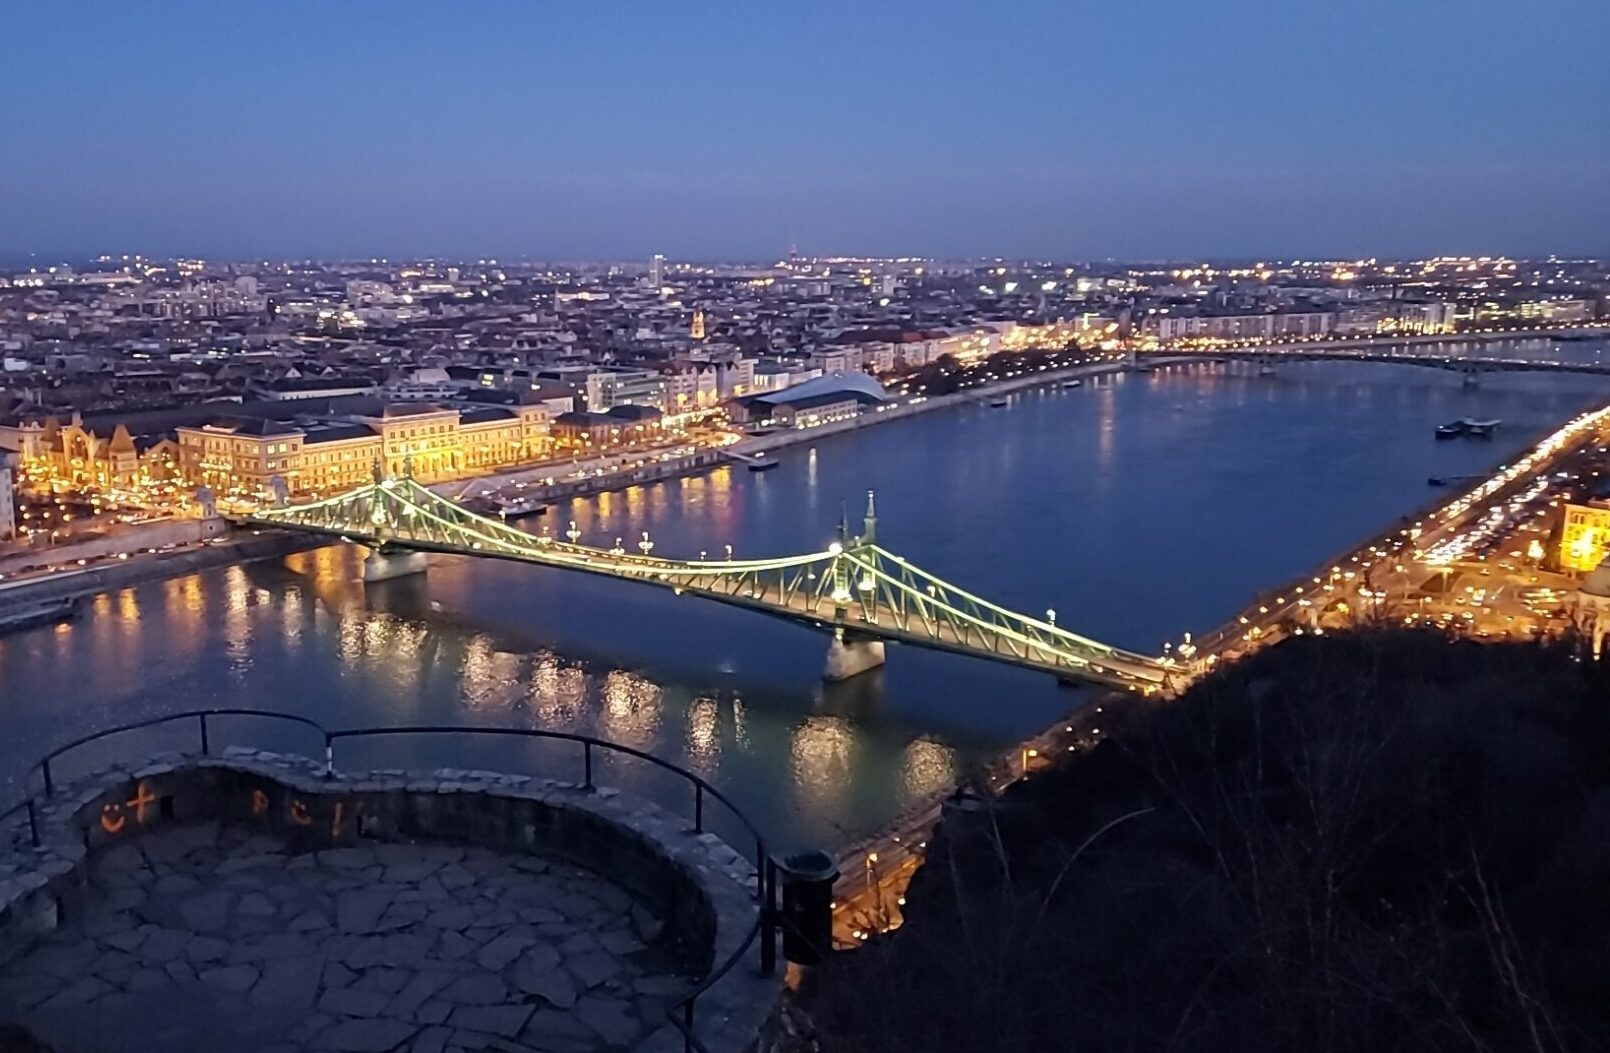 nighttime view of bridge, river and city